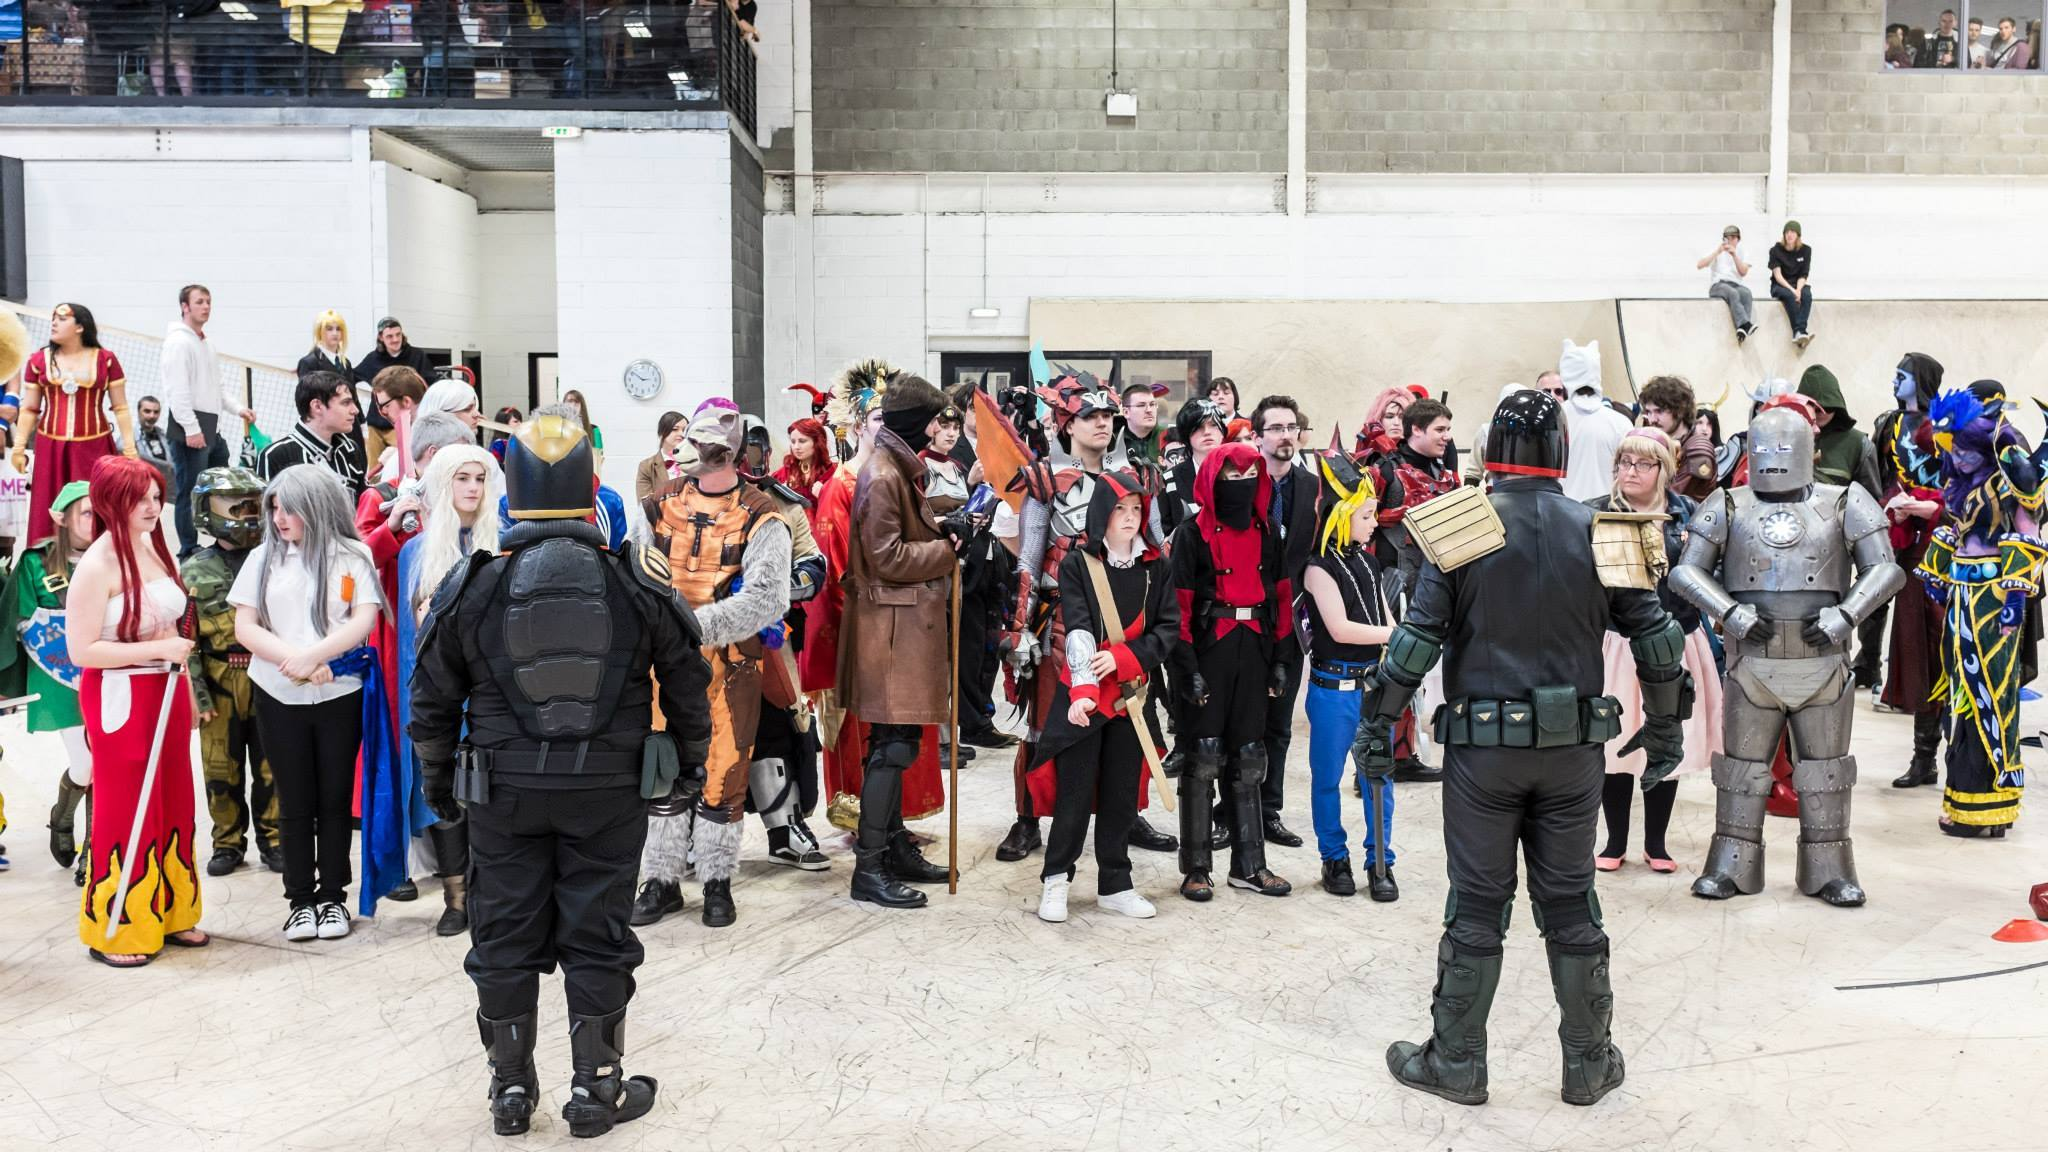 Granite City Comiccon held in May this year and set for another event next year drew in thousands of people dressed as their favourite comic book, movie and game characters